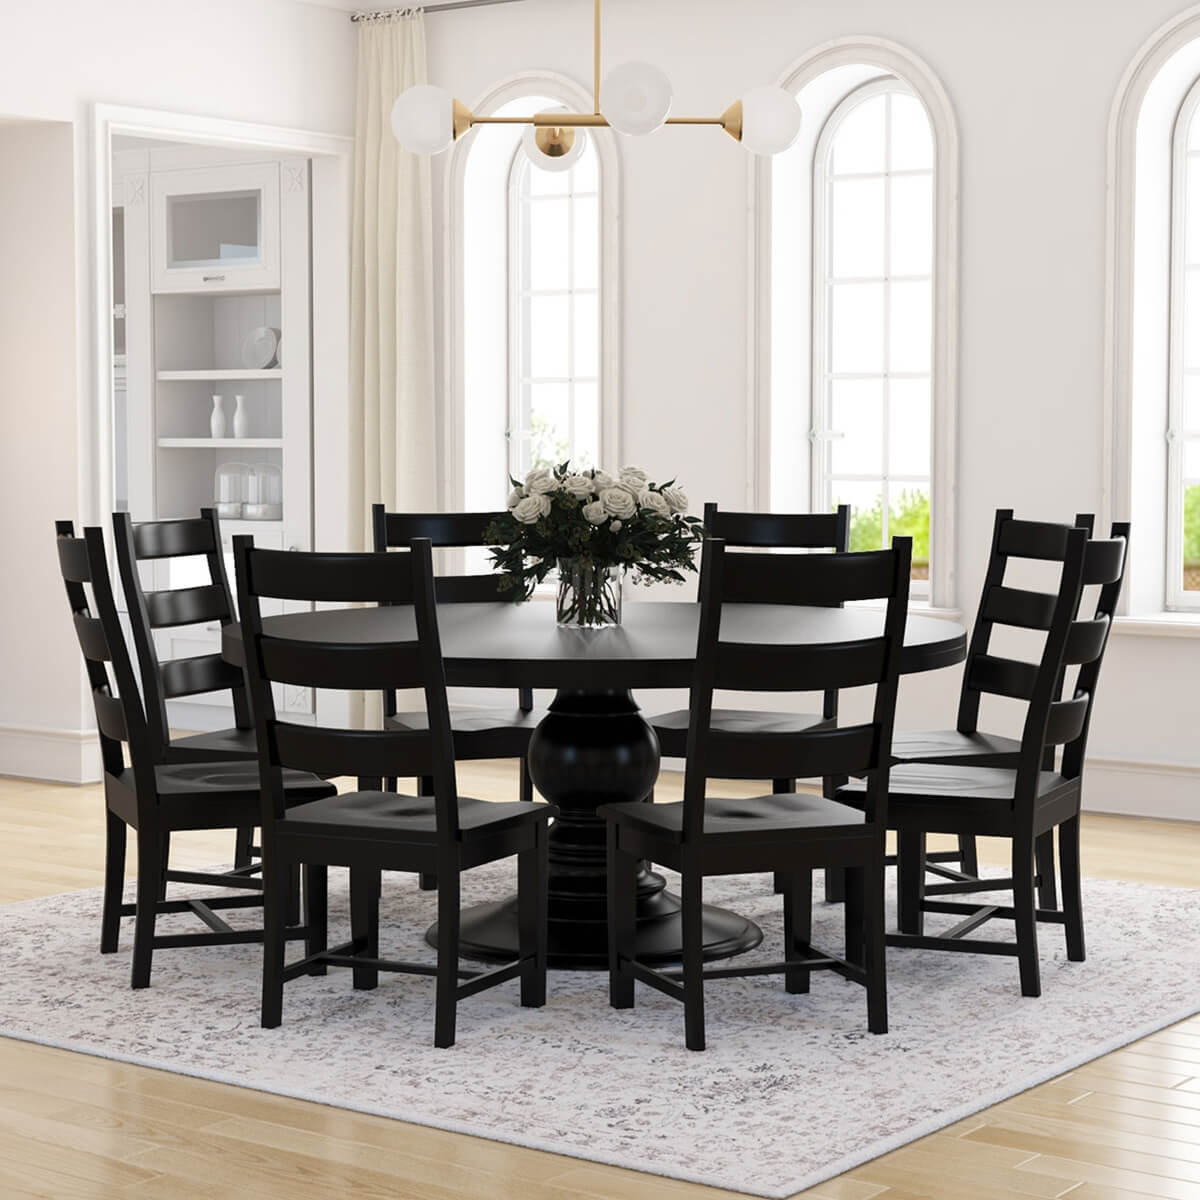 Set Dining Room Table: Nottingham Rustic Solid Wood Black Round Dining Room Table Set